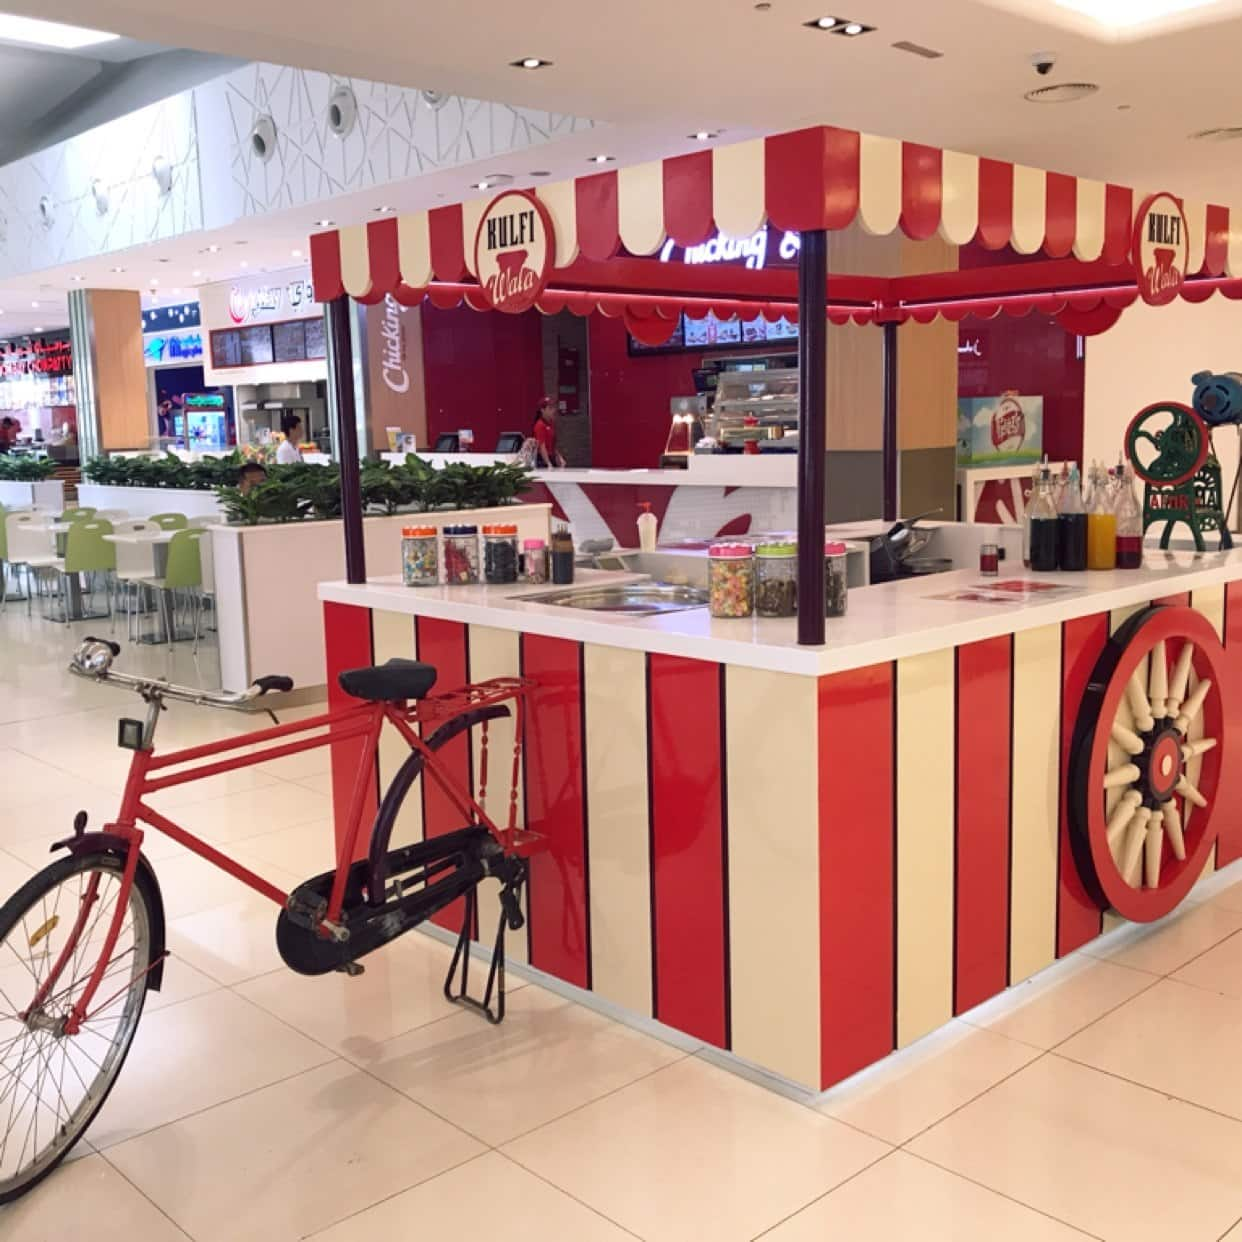 The Kulfi Wala's cart that would usually take rounds of the streets back home, is now parked at the food court of City Centre Al Shindagha in Bur Dubai. do visit Kulfi Wala for a dose of nost